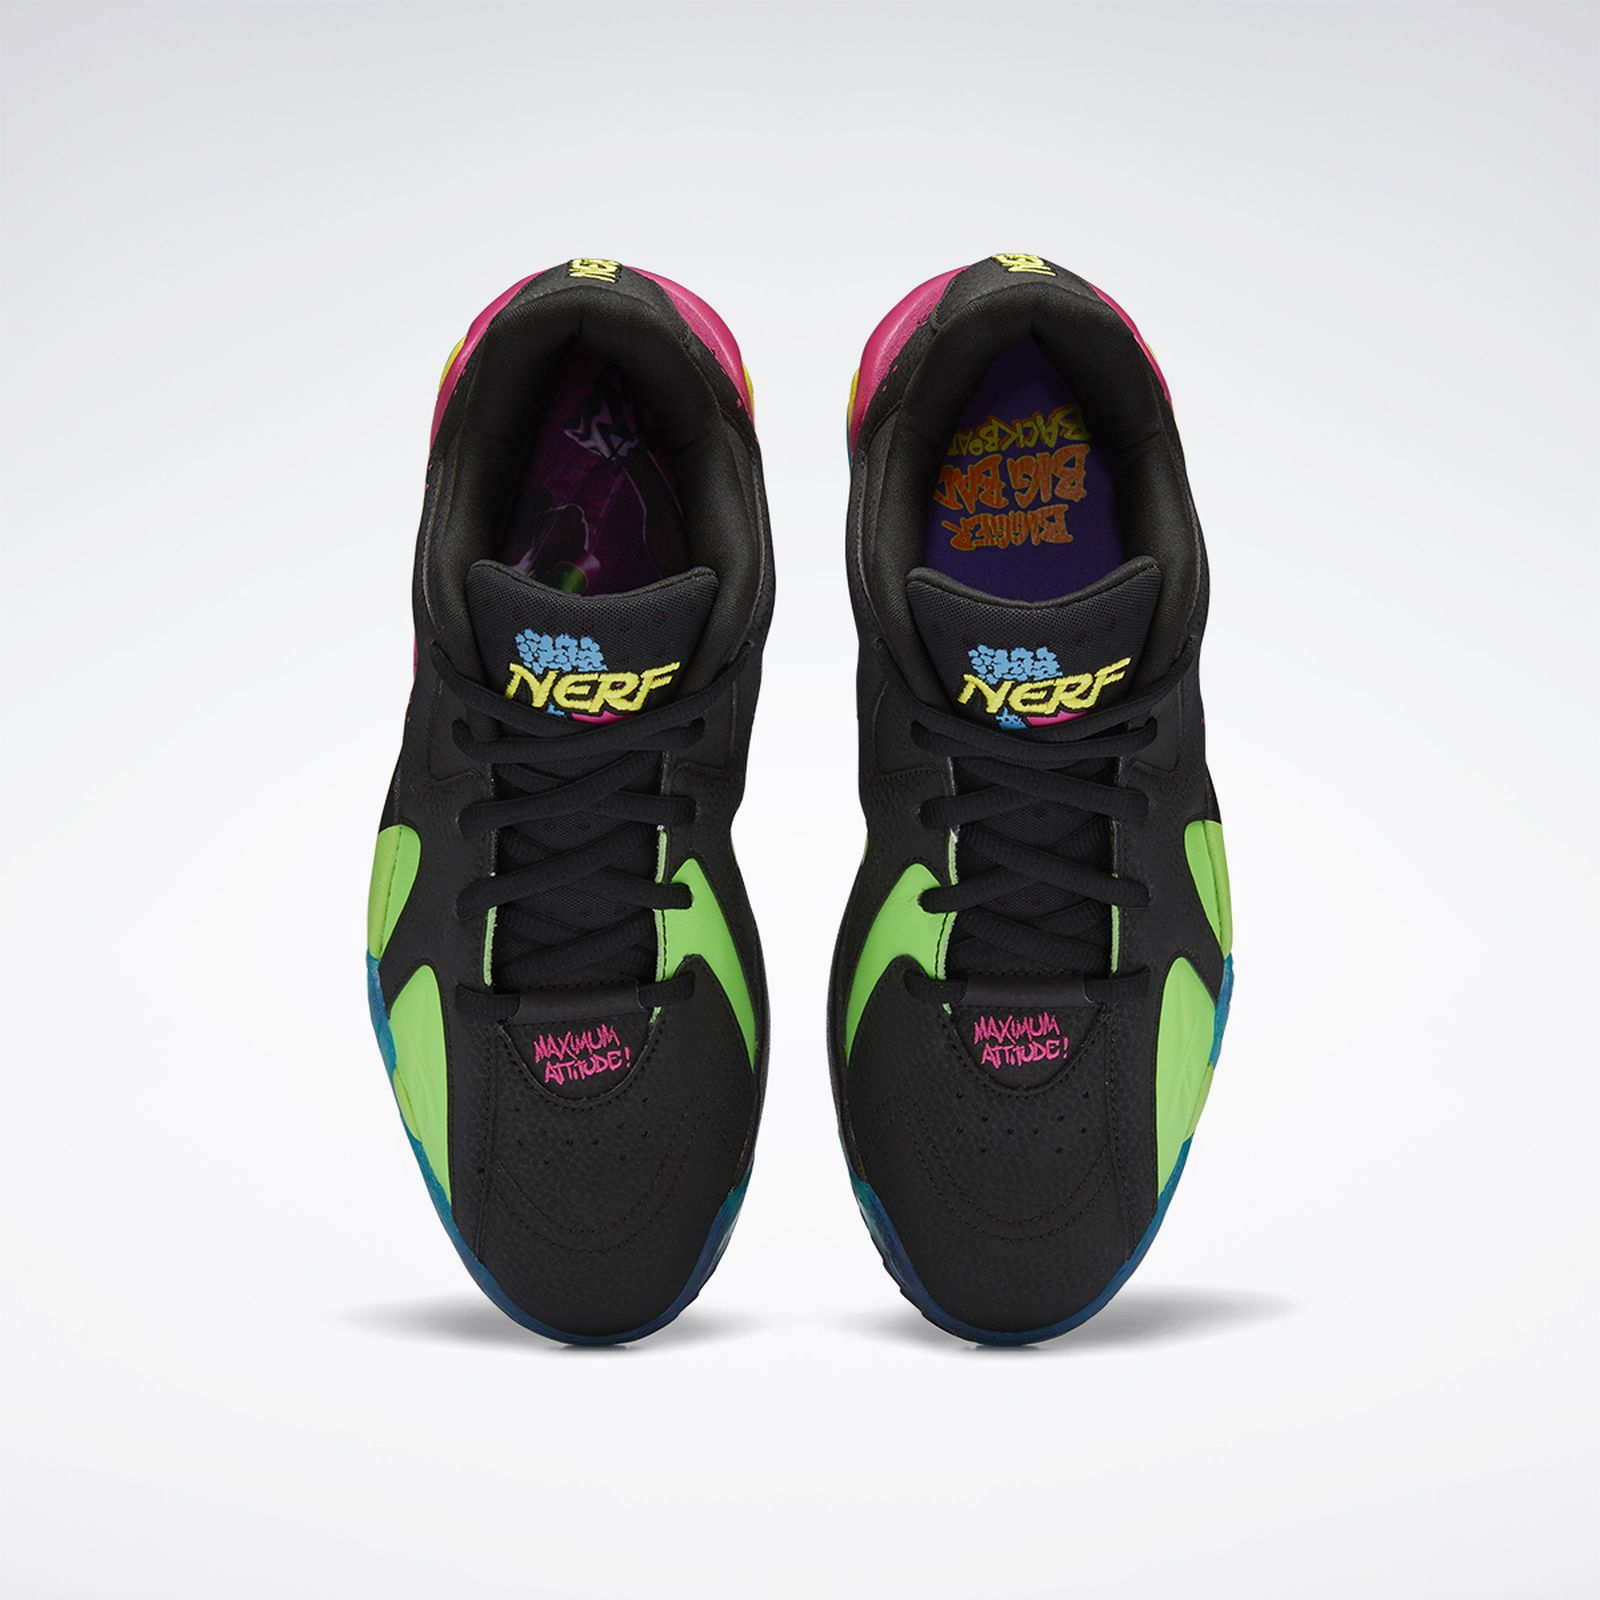 nerf-reebok-retro-basketball-collection-release-date-price-11